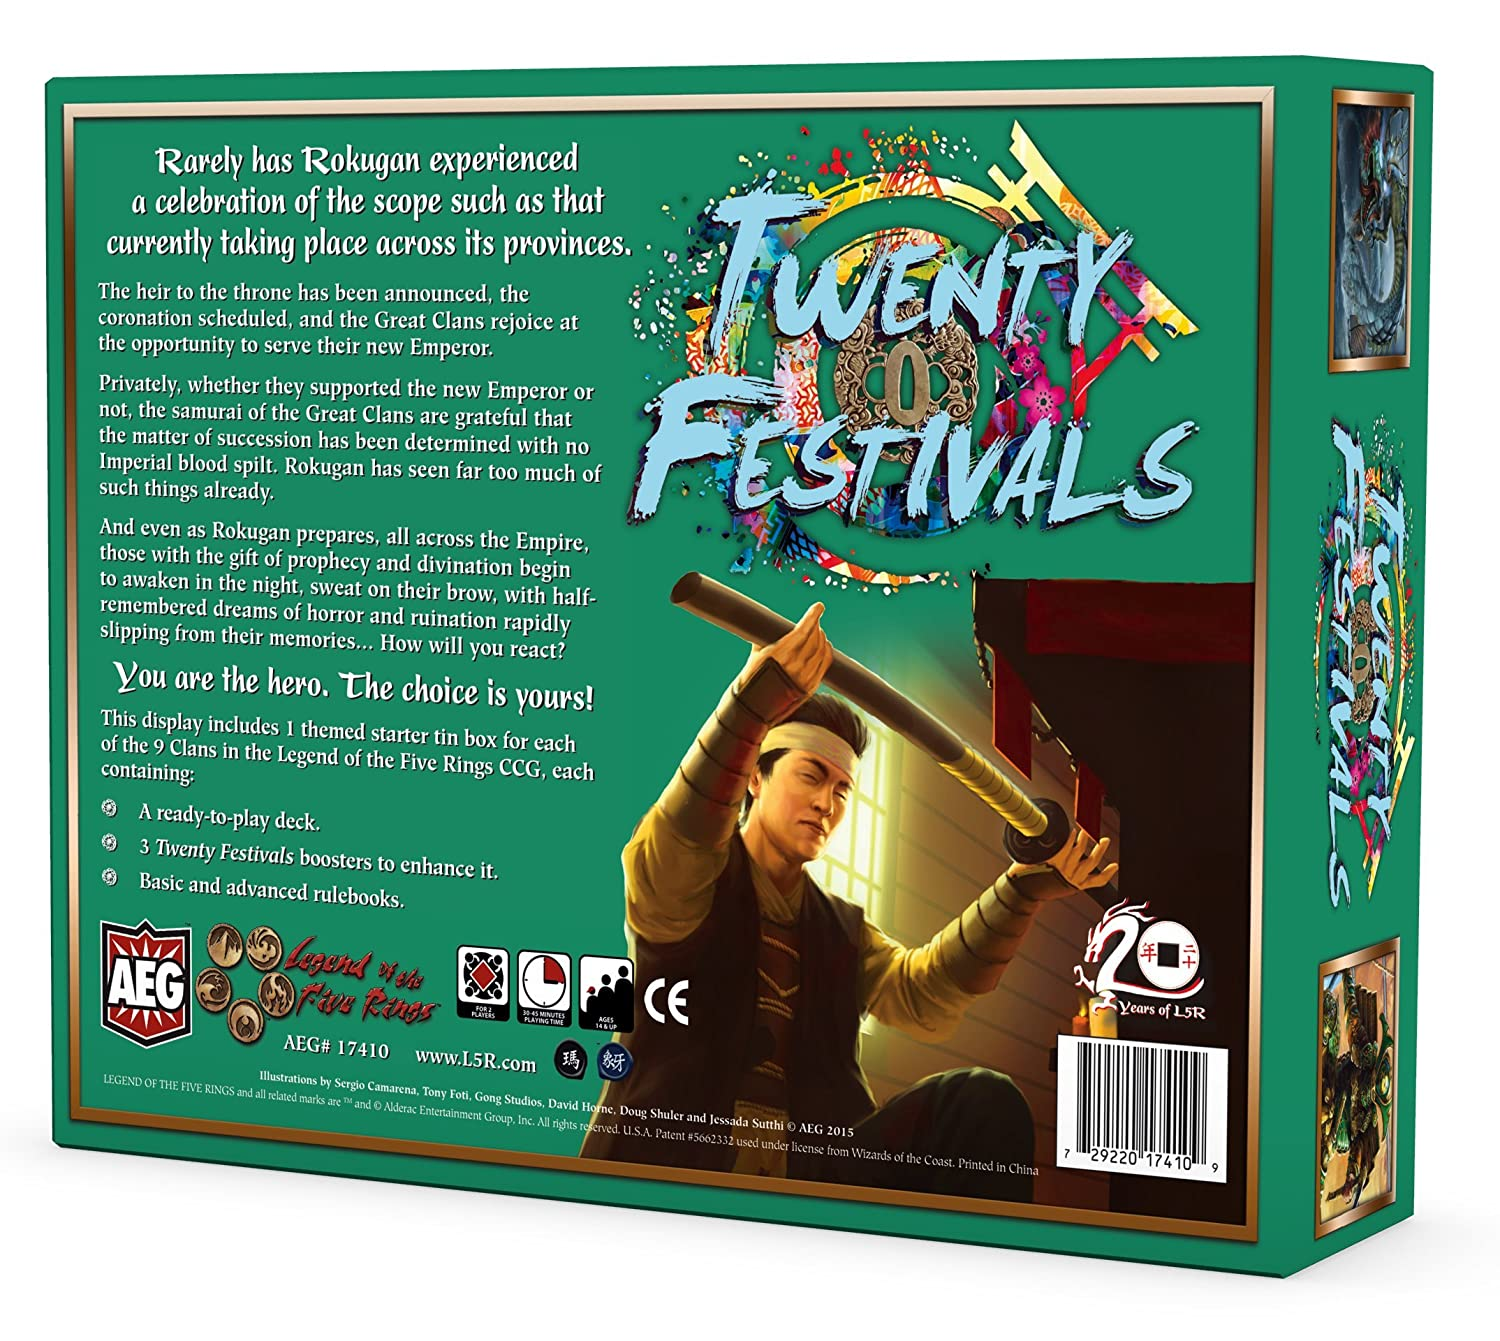 kaartspellen L5R Twenty Festivals Starter Display Card Game